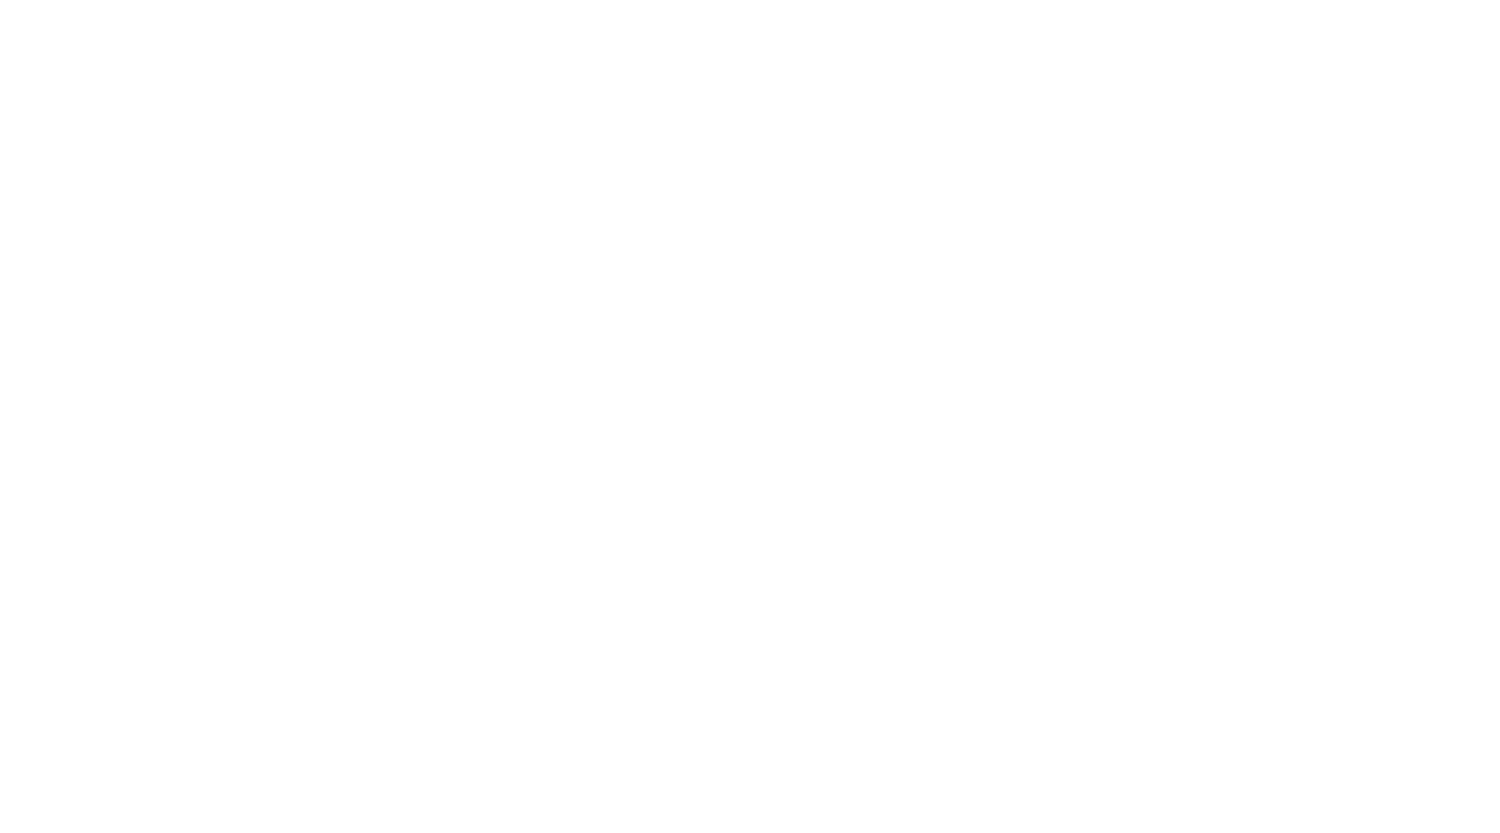 MIT Fall Career Fair